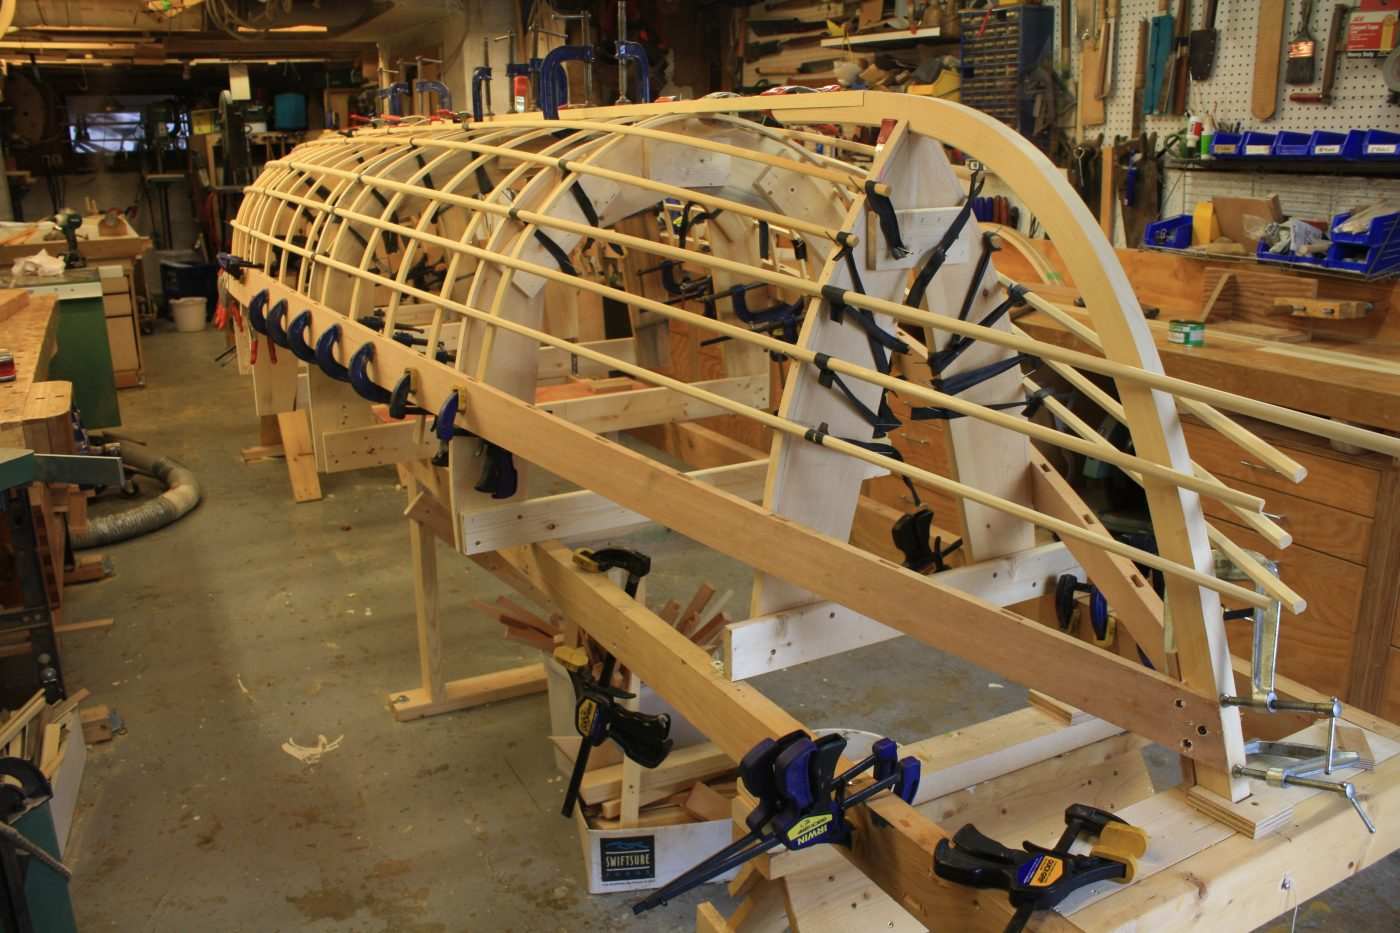 Skin-on-frame Pacific handliner under construction